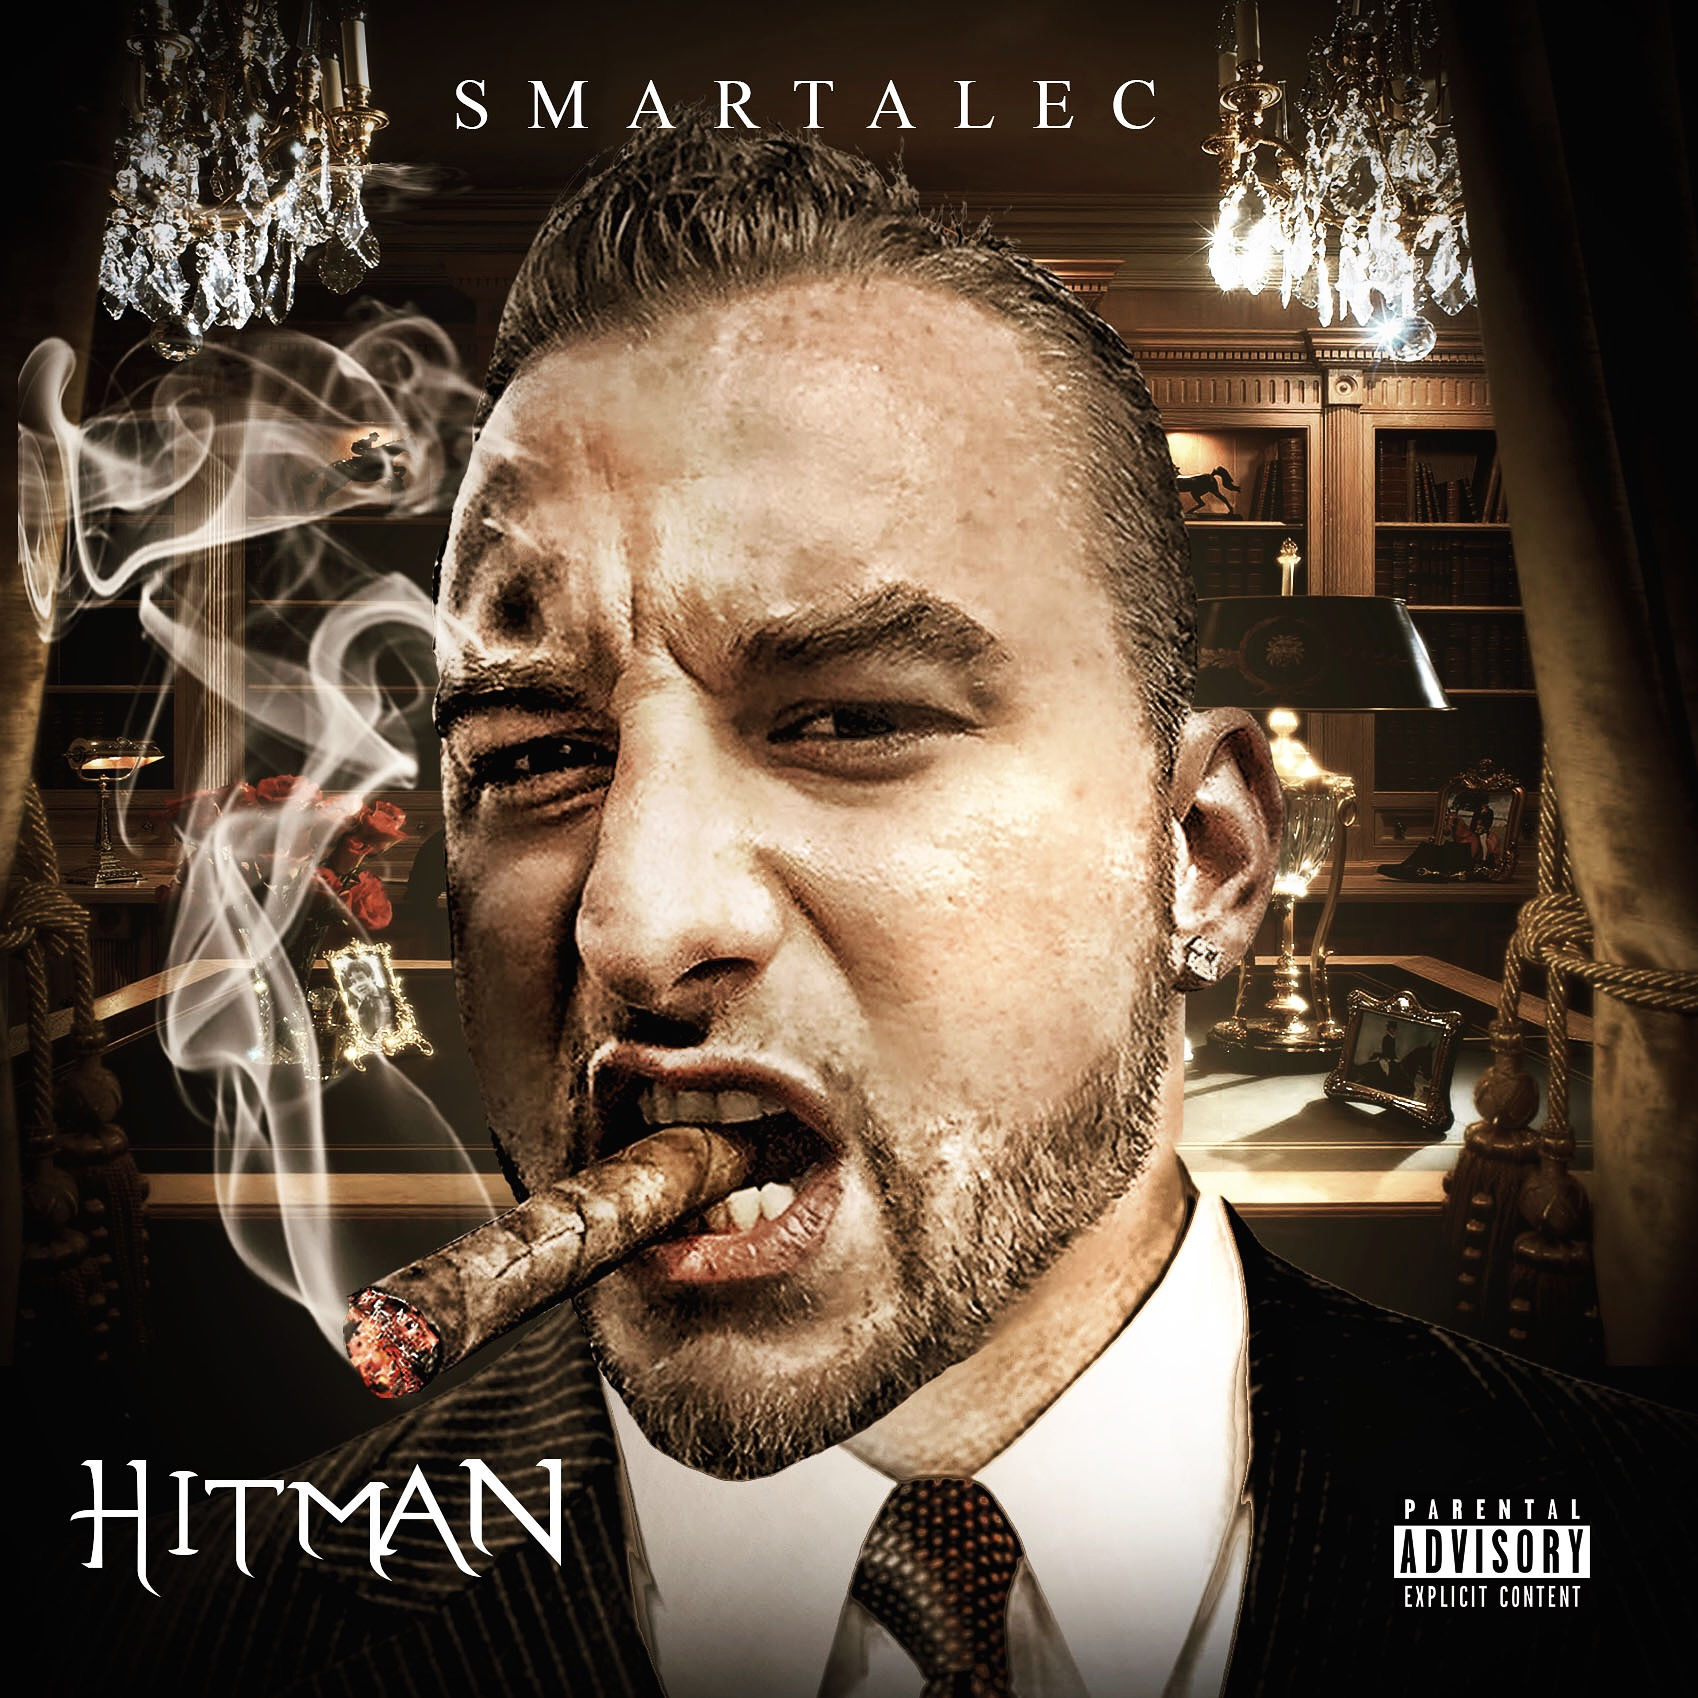 Smartalec On The Track | 'Hitman' LP